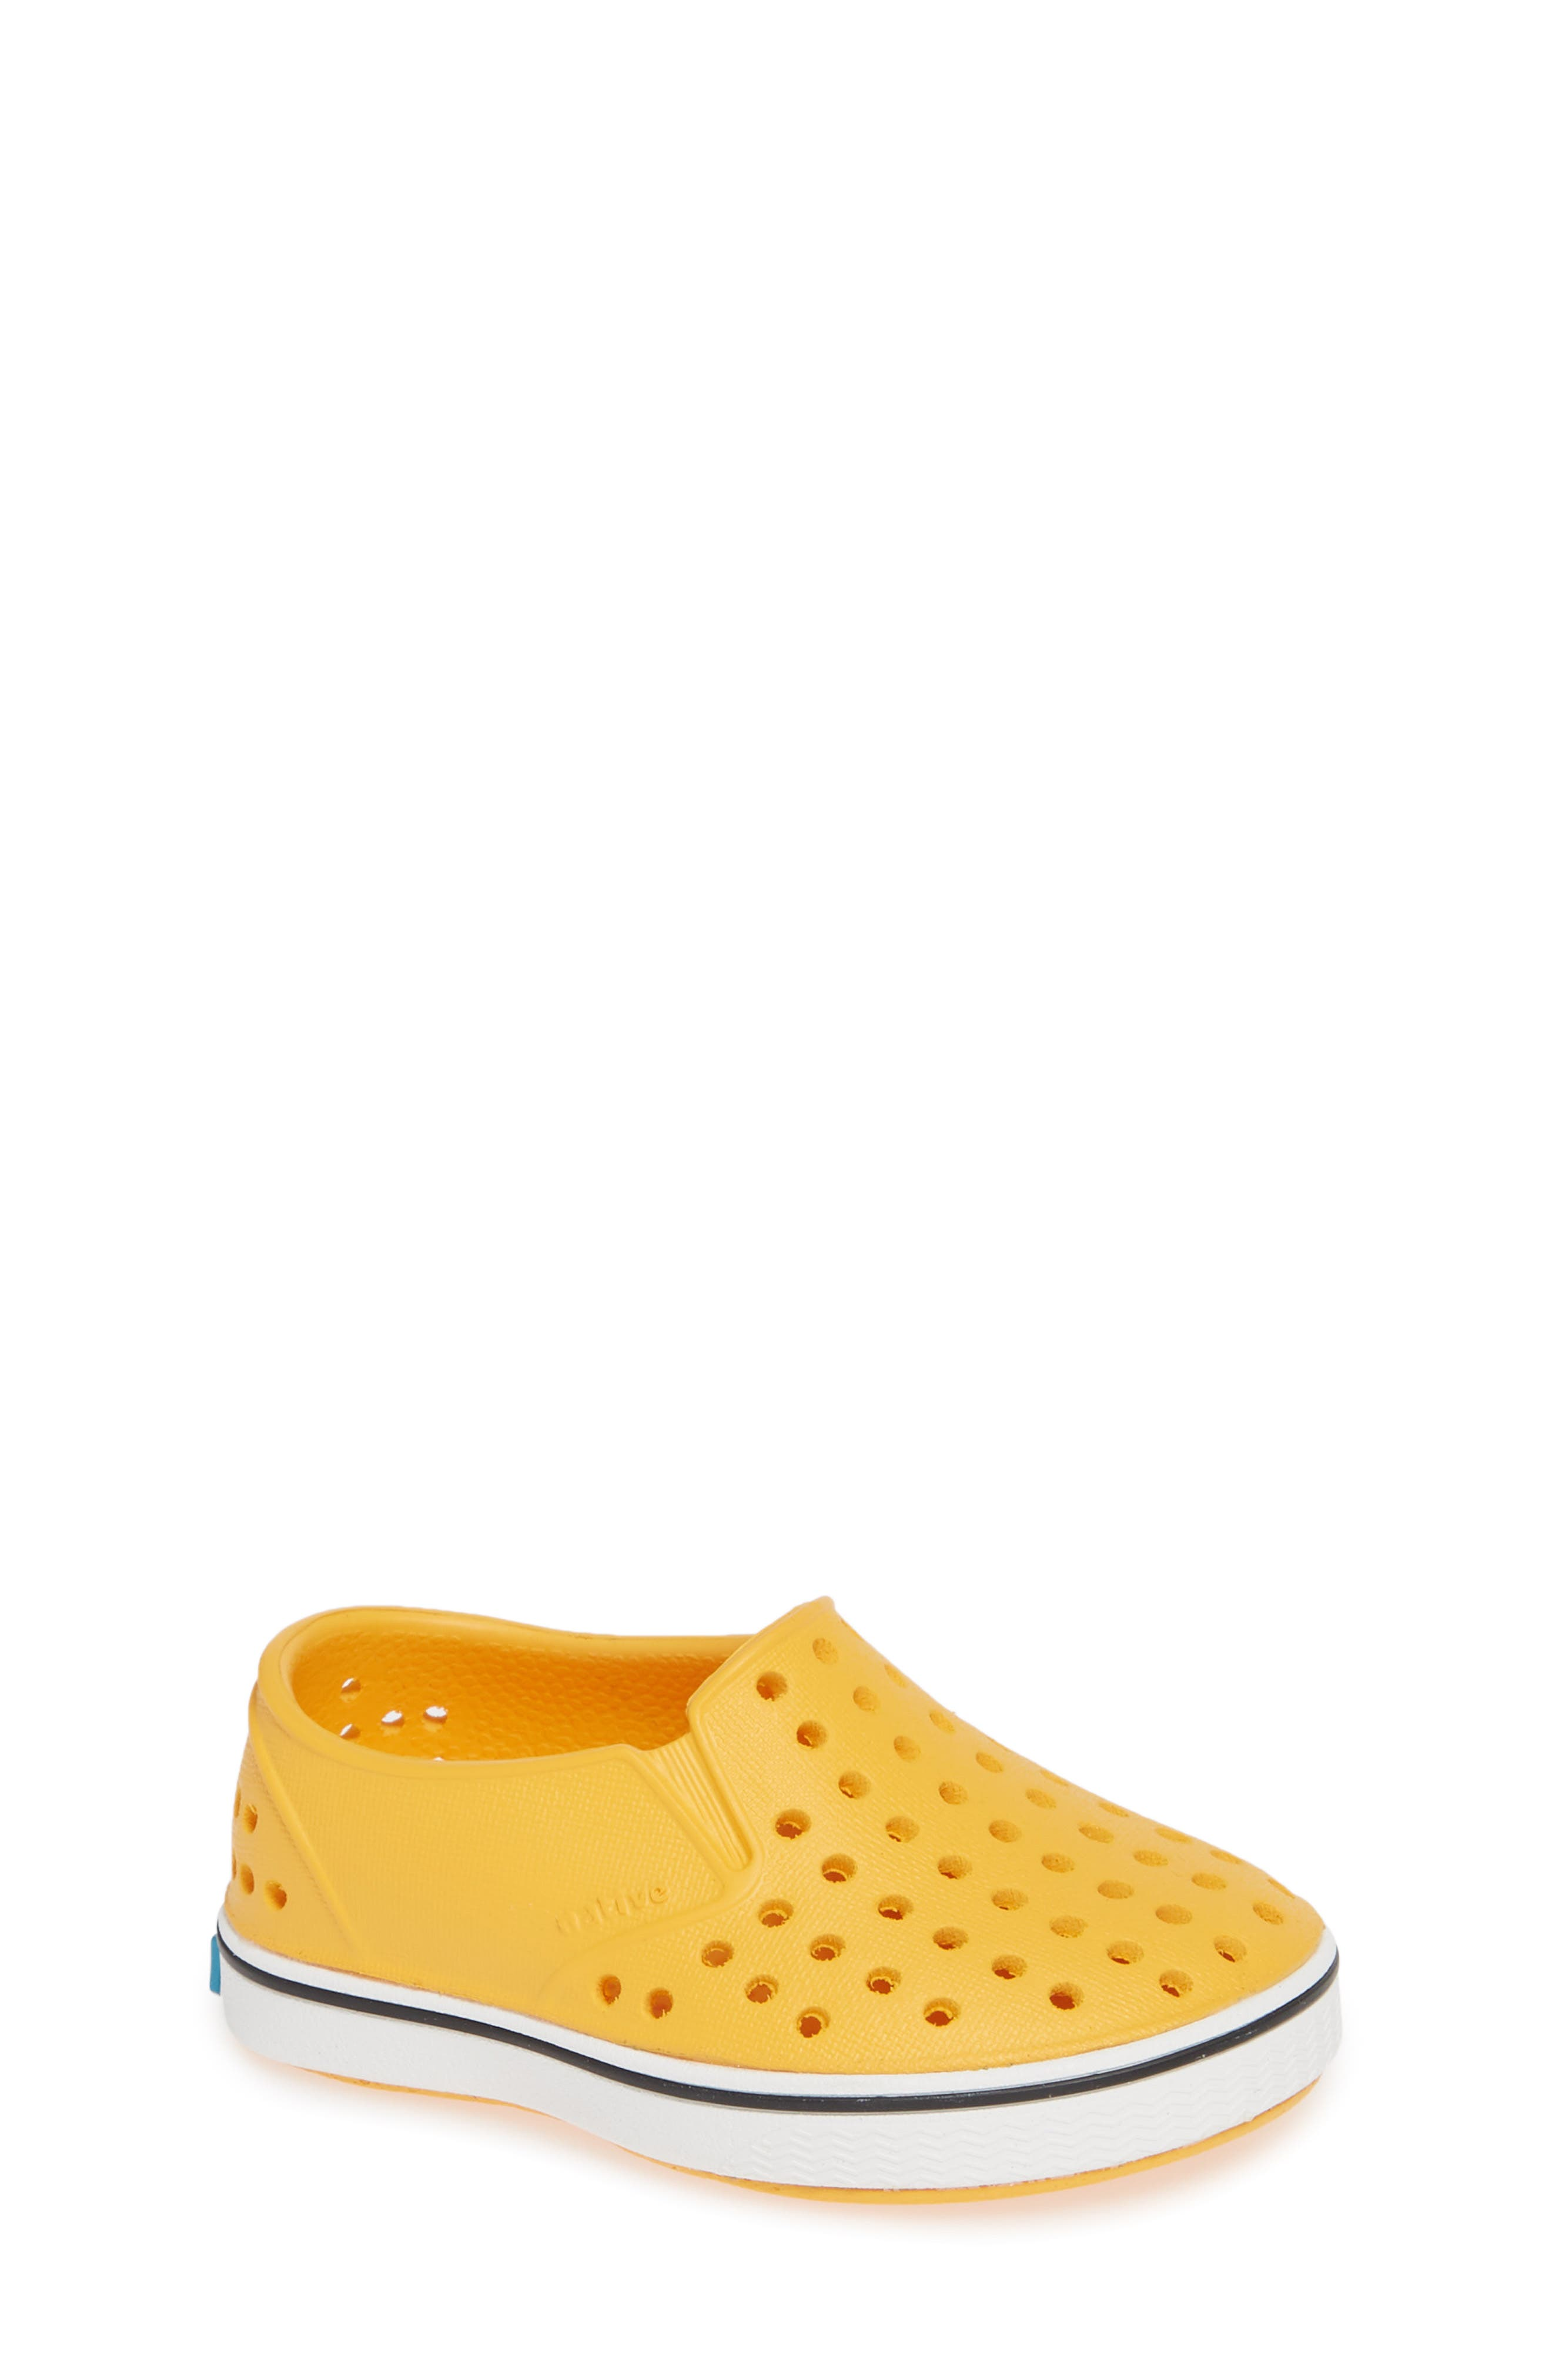 Miles Water Friendly Slip-On Sneaker,                         Main,                         color, Beanie Yellow/ Shell White